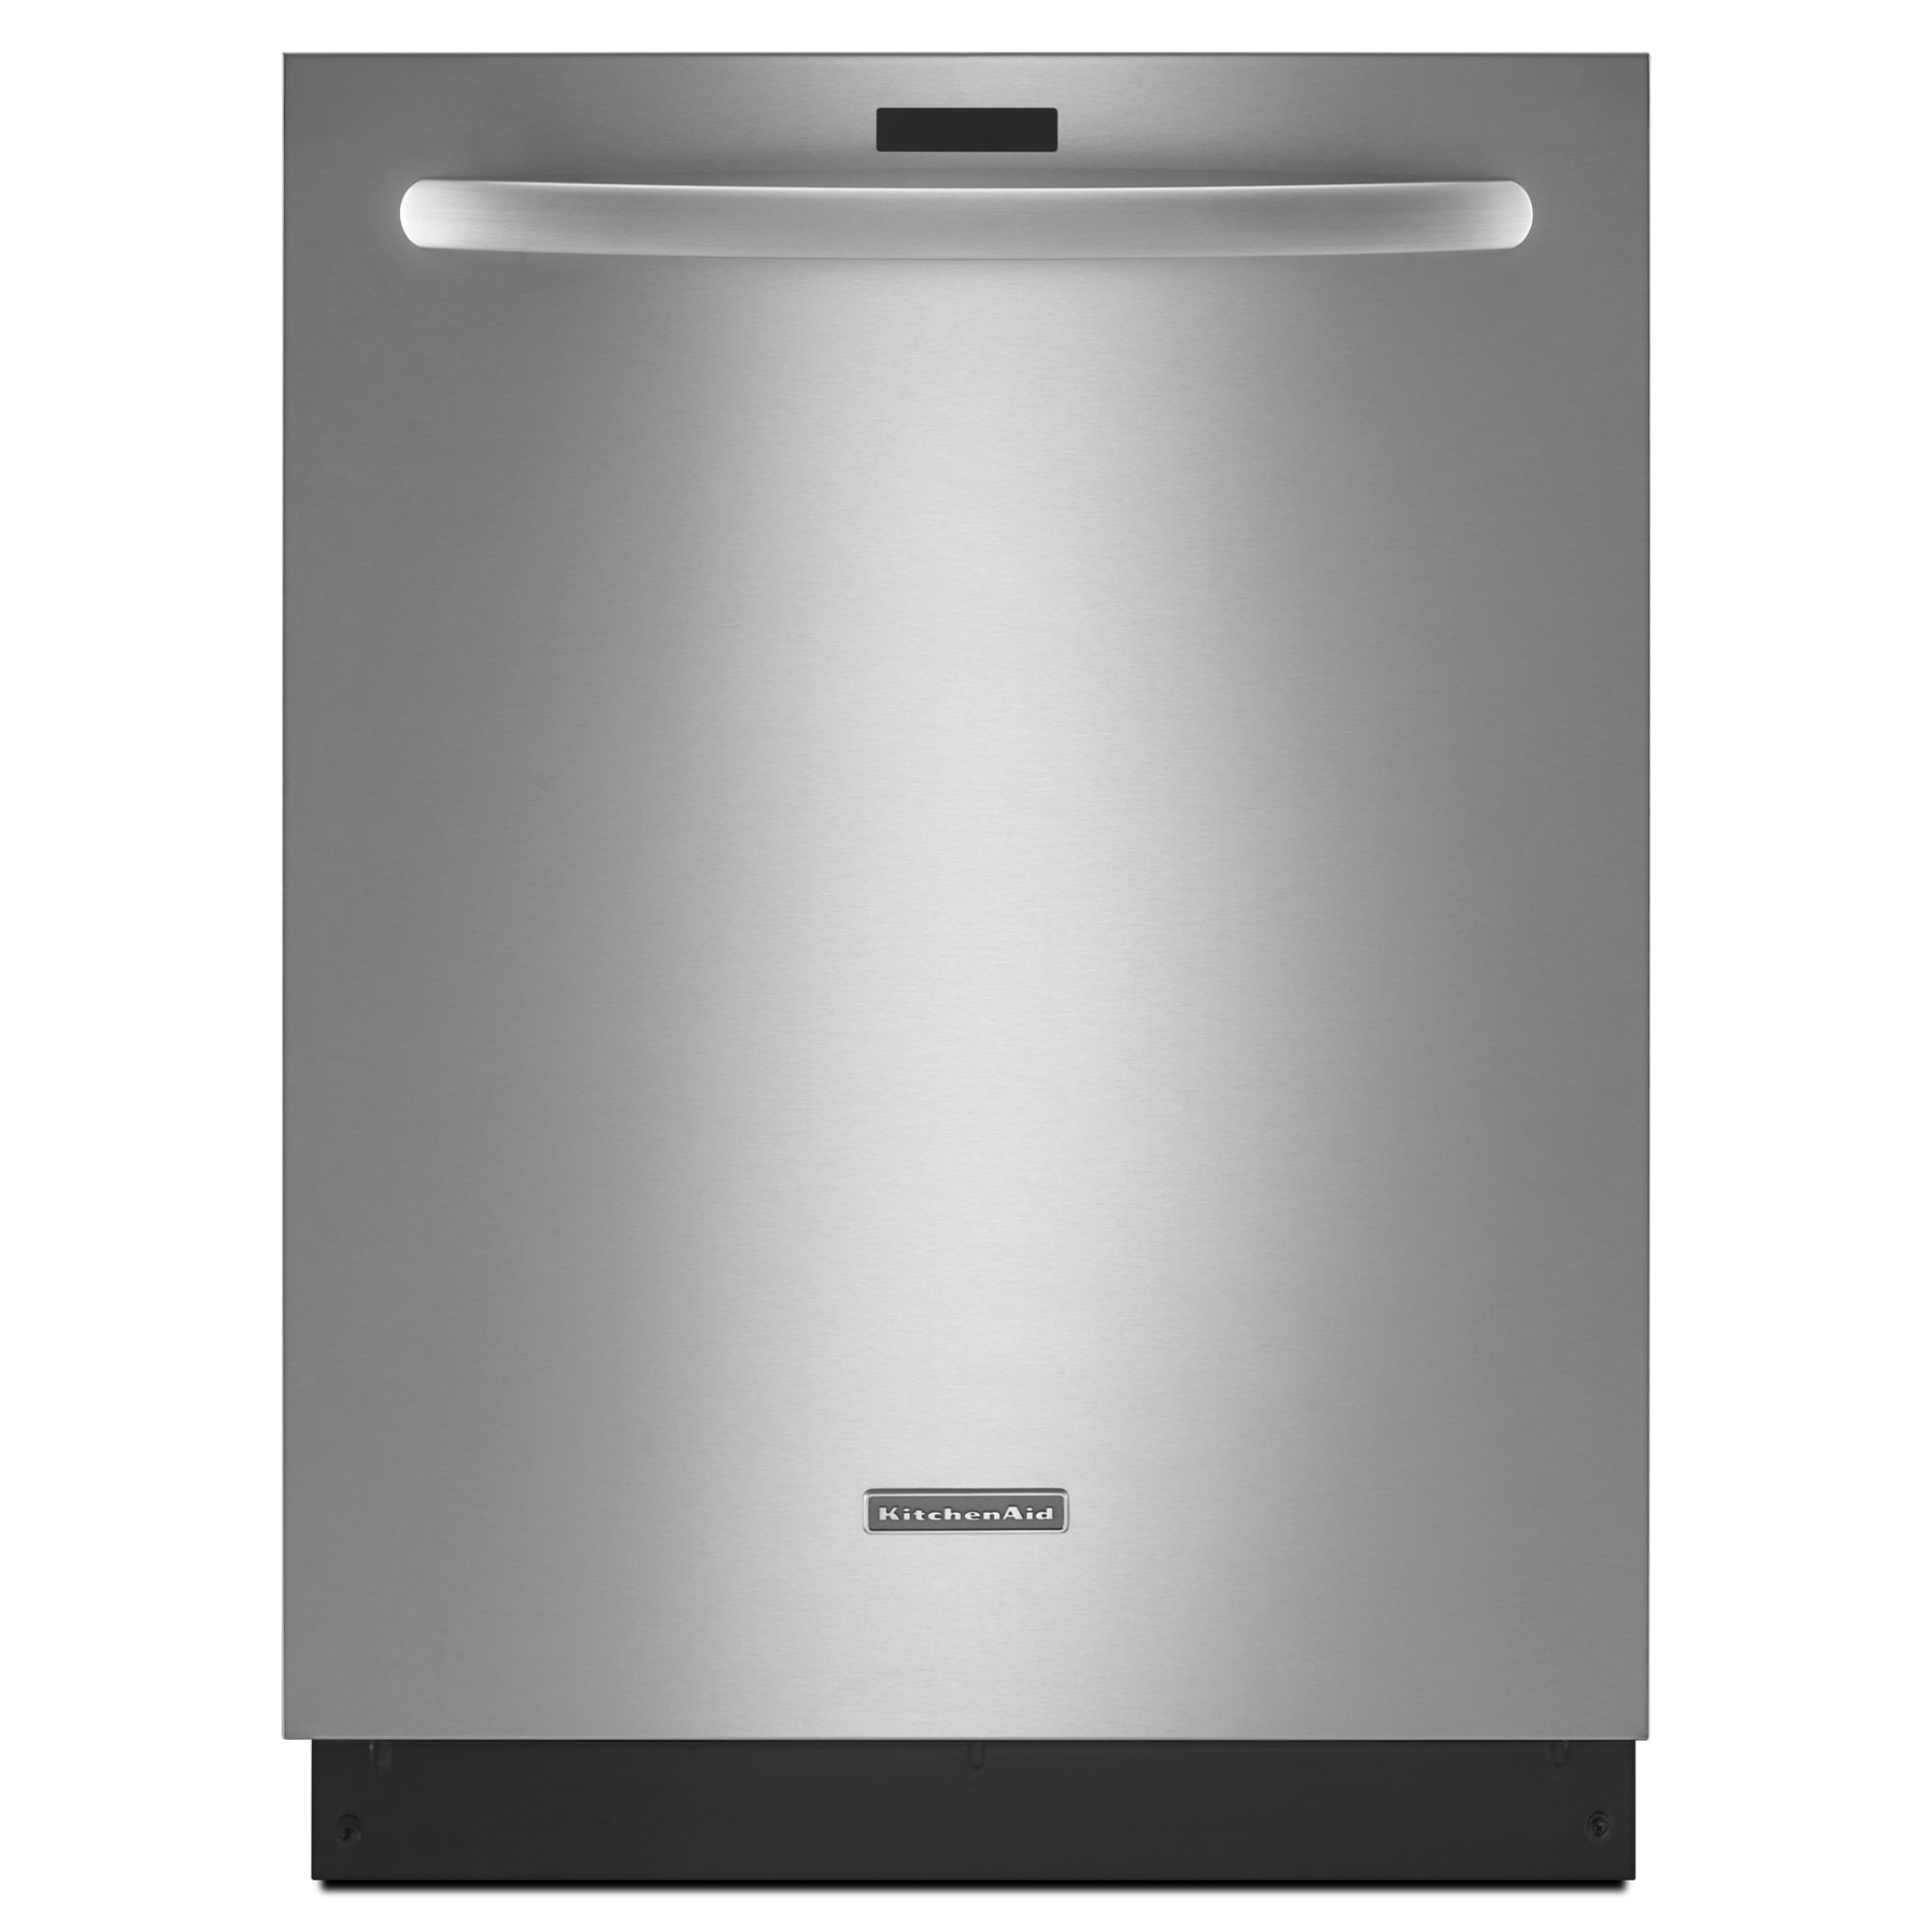 KitchenAid 24 in. Built-In Dishwasher - Stainless Steel